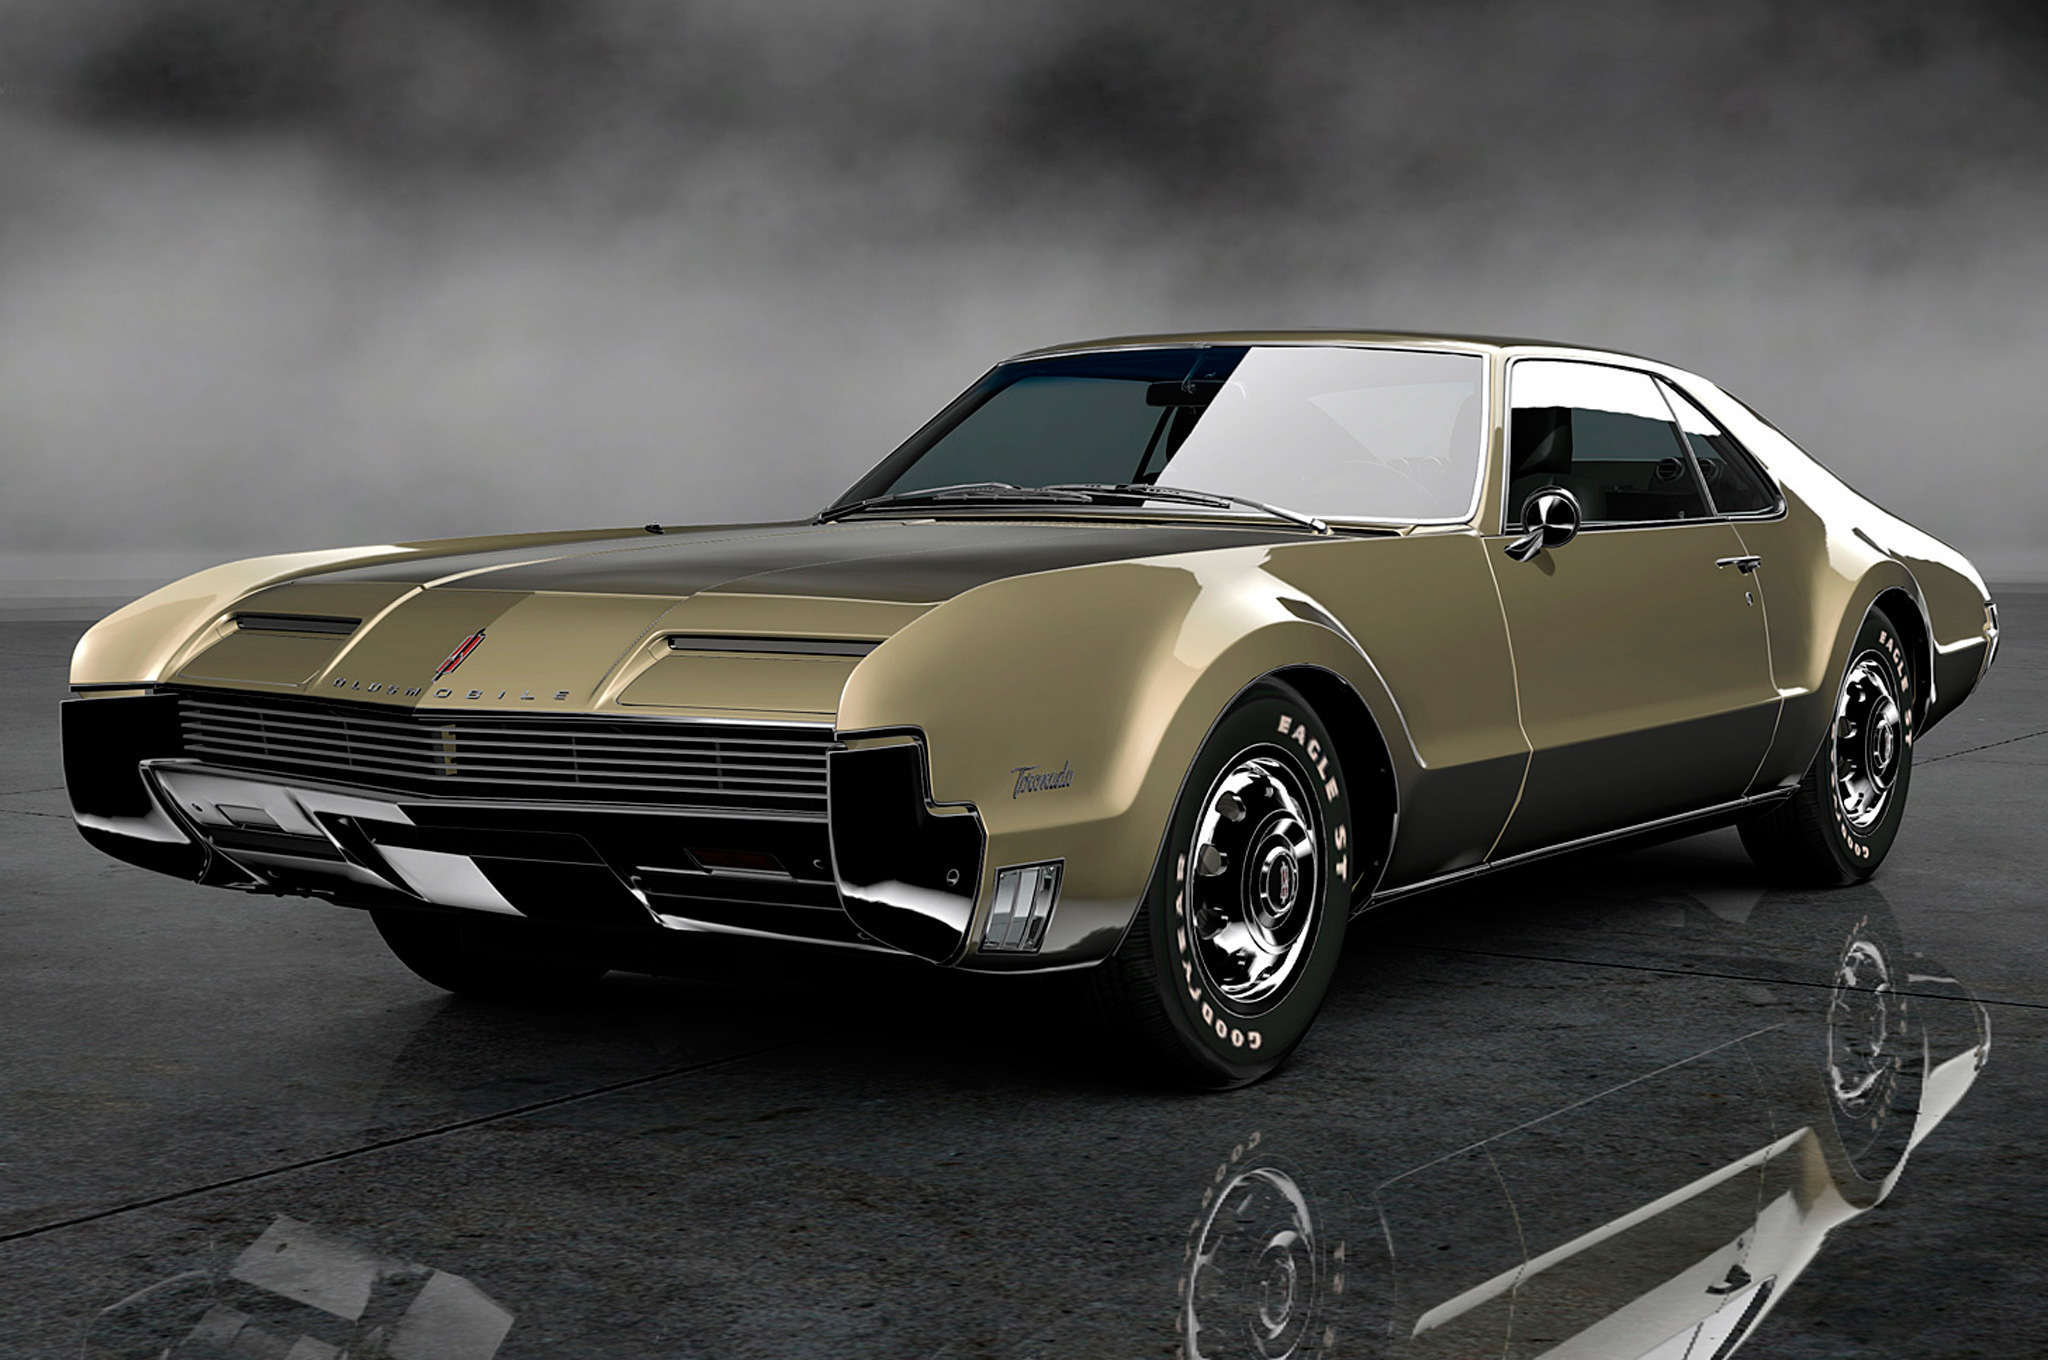 1966 Oldsmobile Toronado Widescreen for desktop